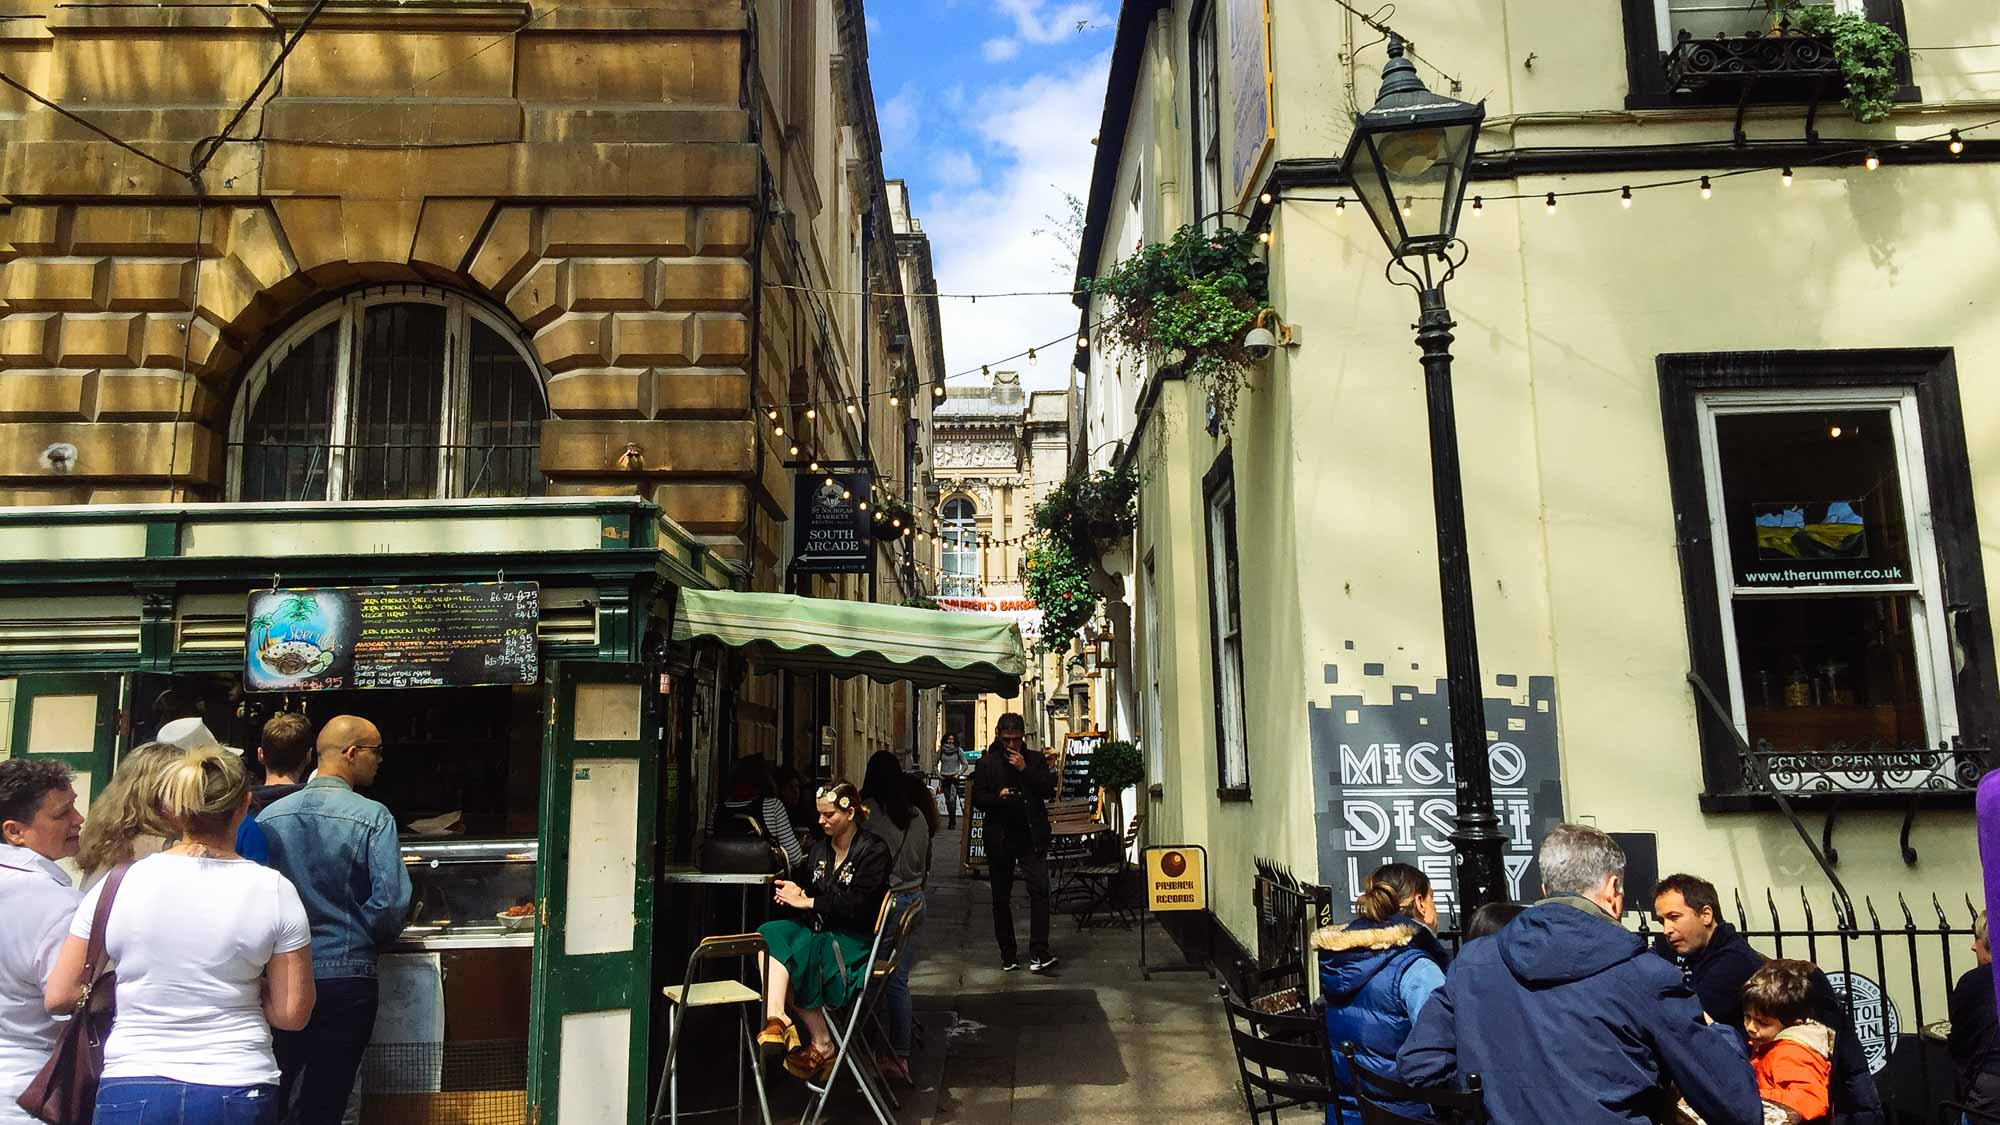 Things to do in Bristol -St.Nick's Market